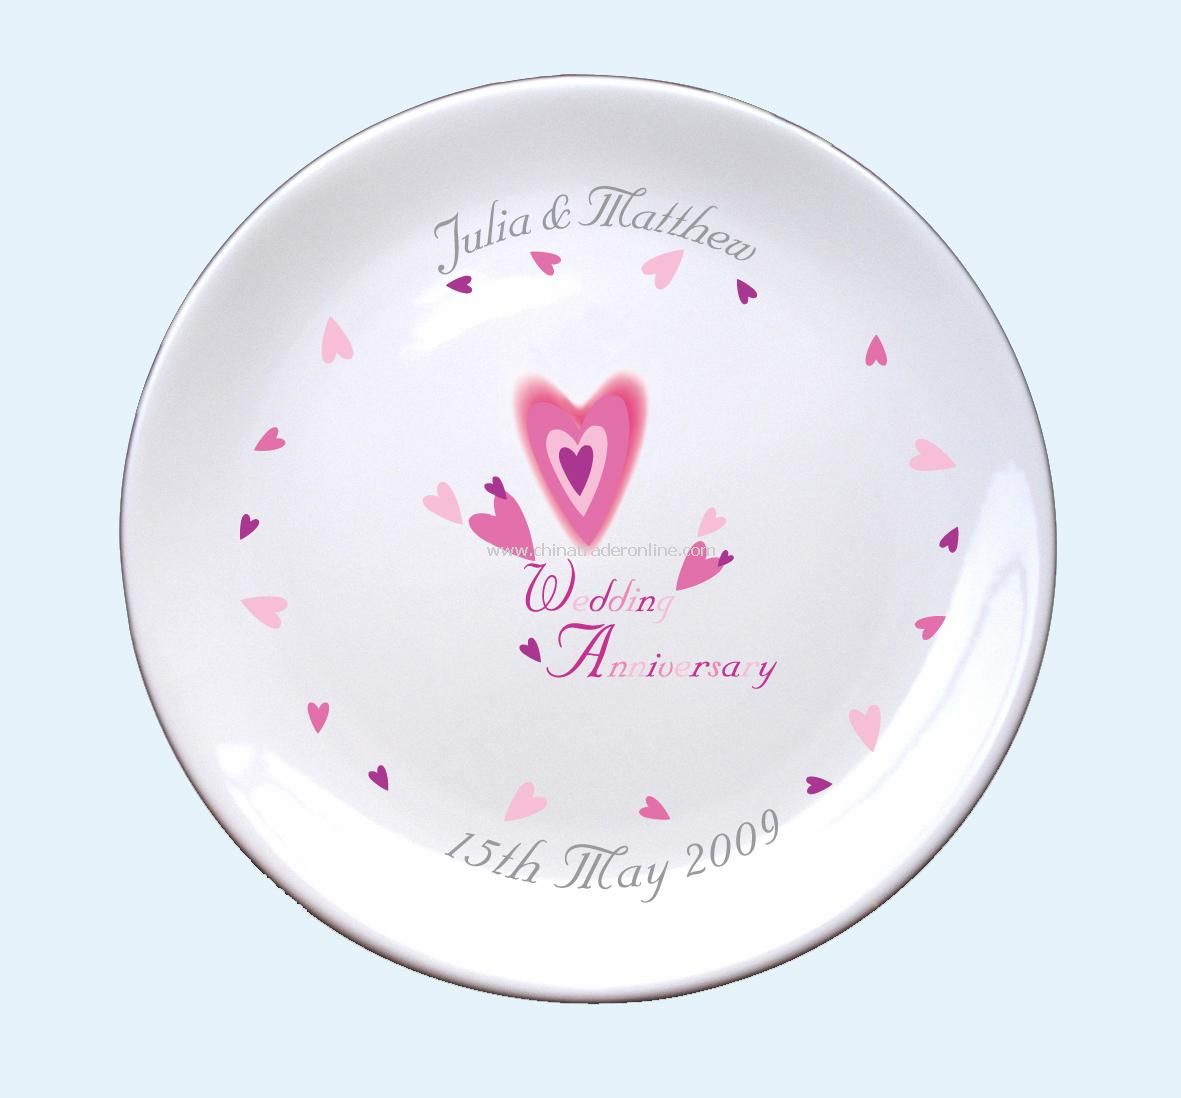 Wedding Plate from China